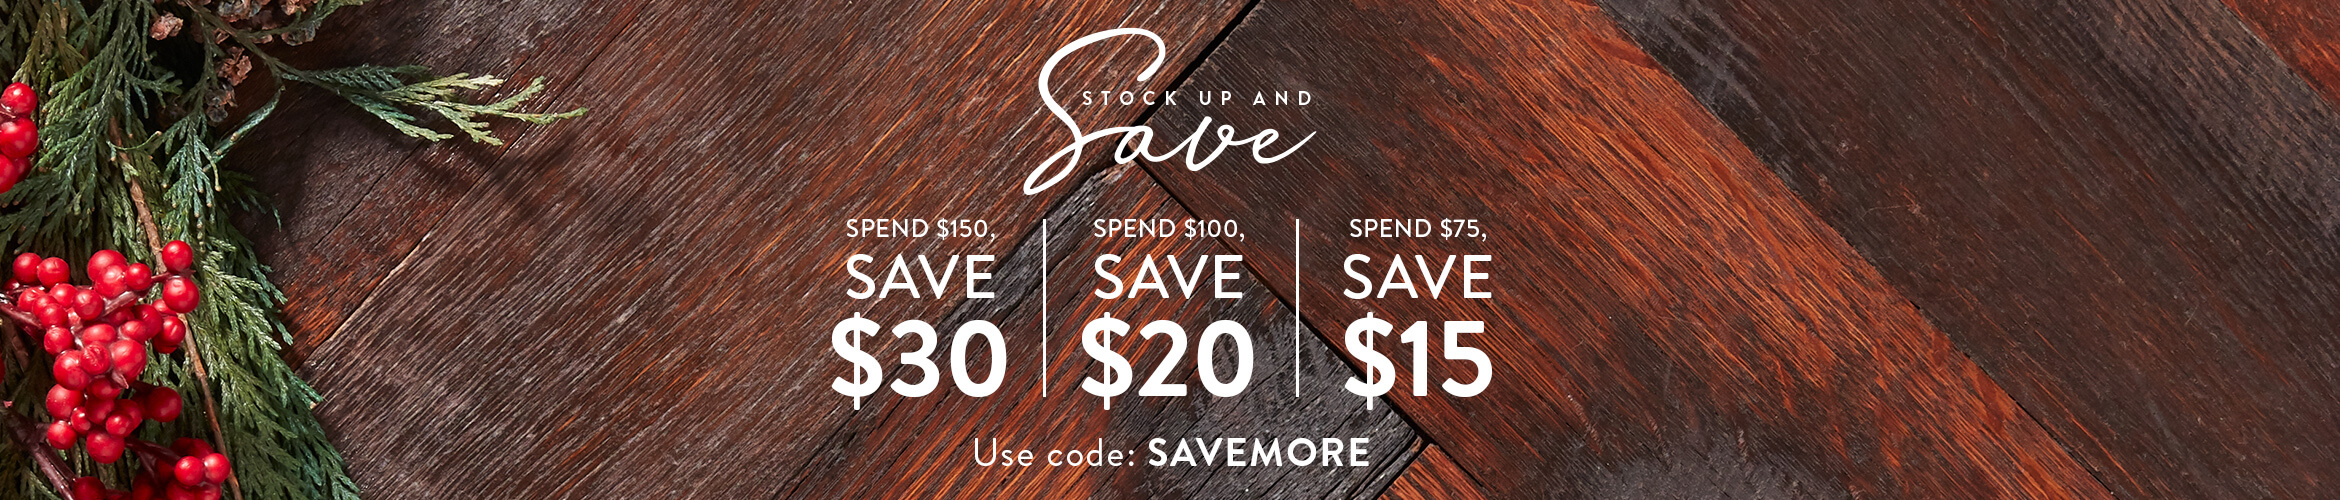 Stock up and save: Spend $150, save $30; Spend $100, save $20; Spend $75, save $15. Use code: SAVEMORE.